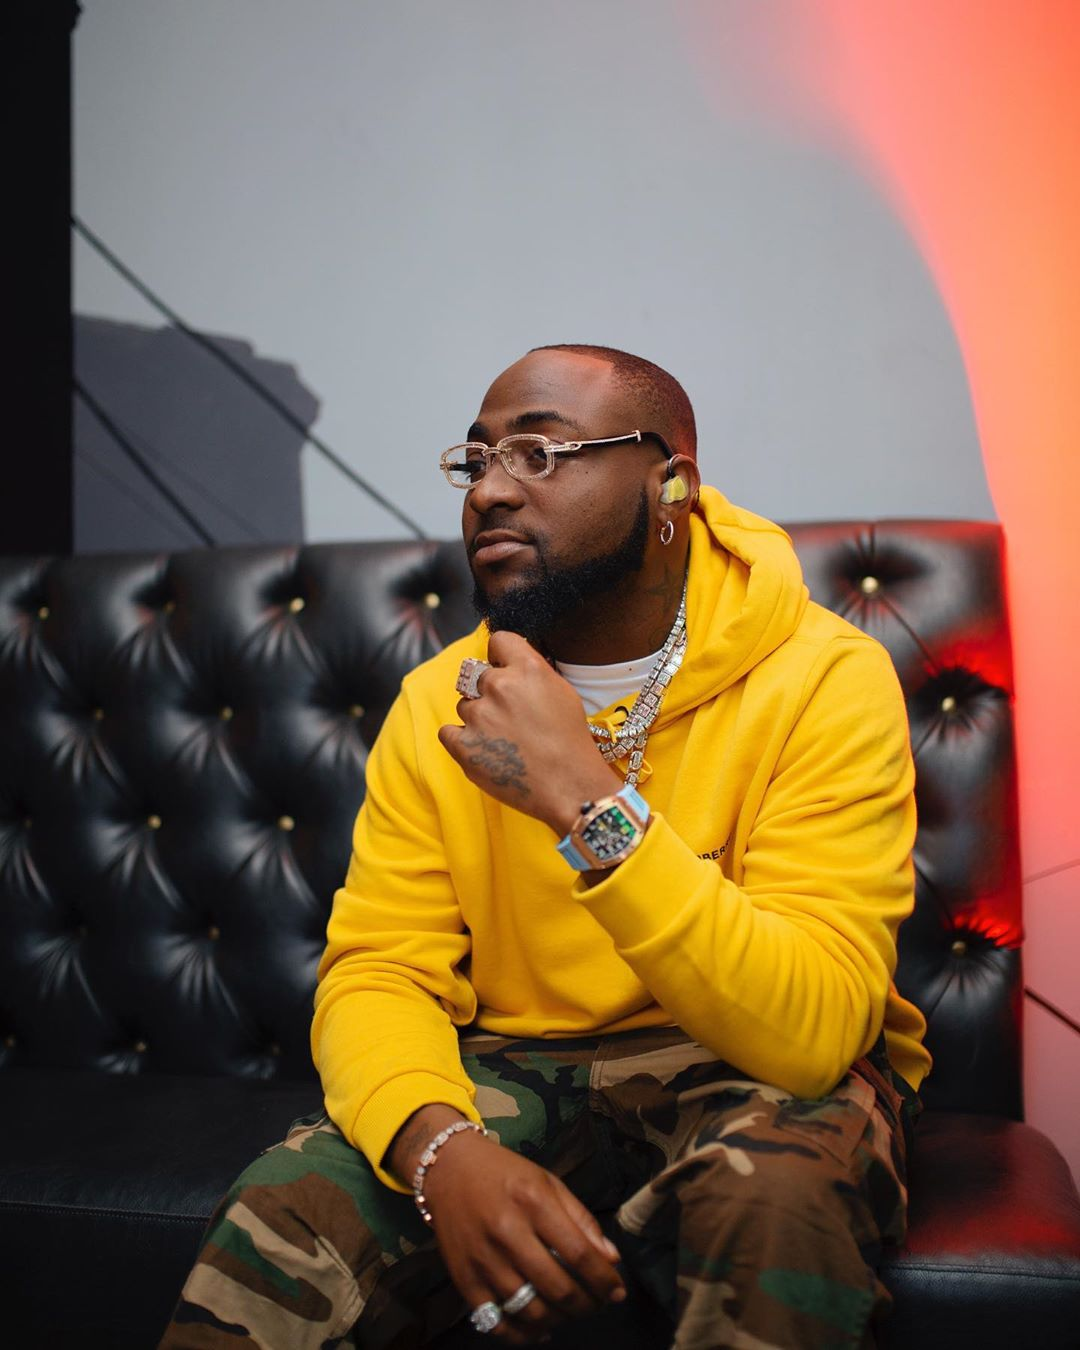 Davido Reveals He Was Mocked At US College For Being Black